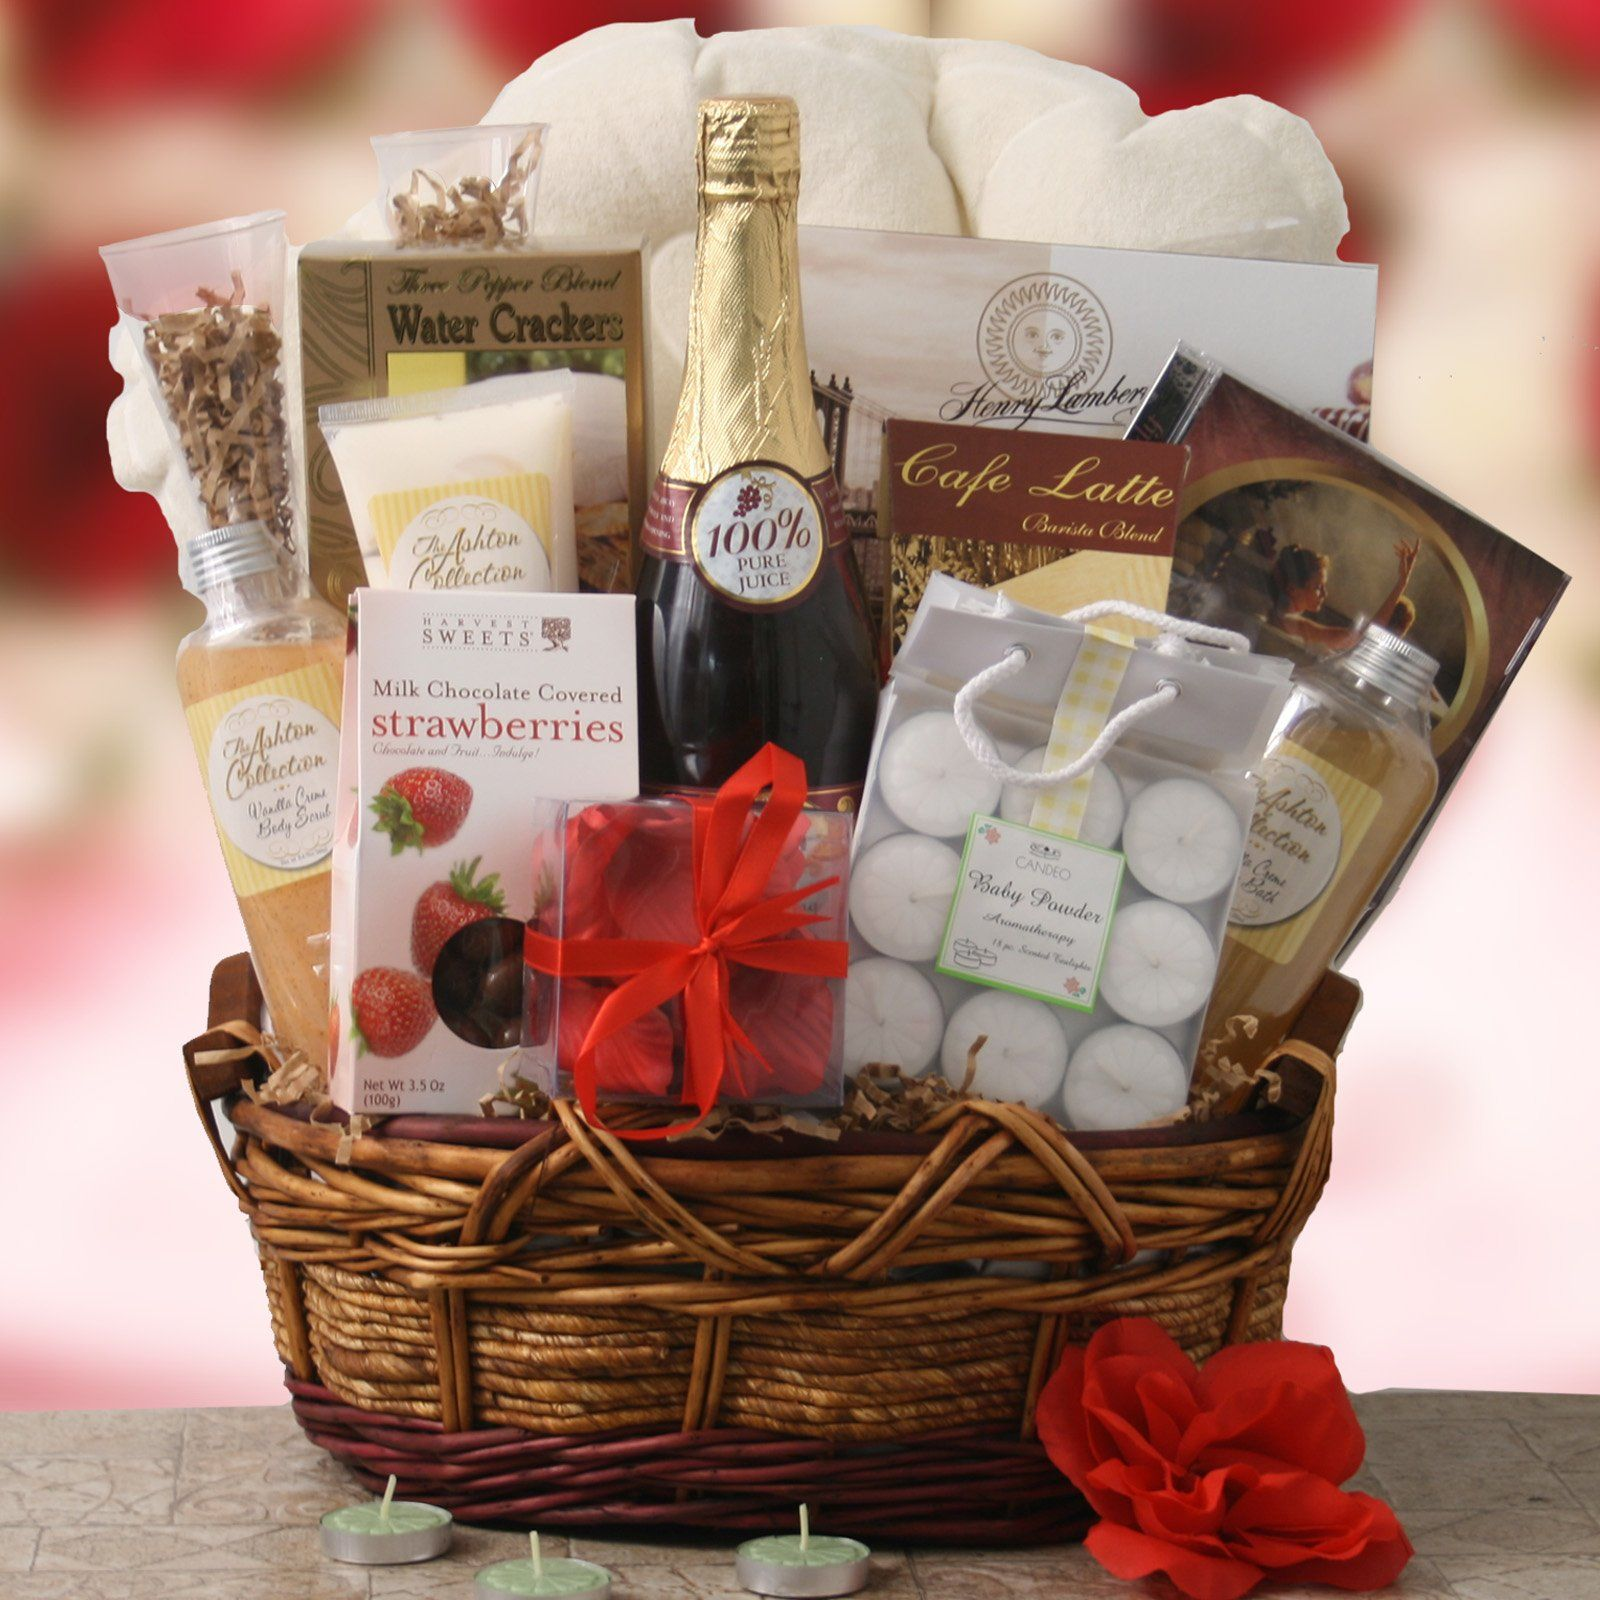 Everlasting Love Gift Basket Www Giftbaskets Com Honeymoon Gift Baskets Wedding Gift Baskets Honeymoon Gifts